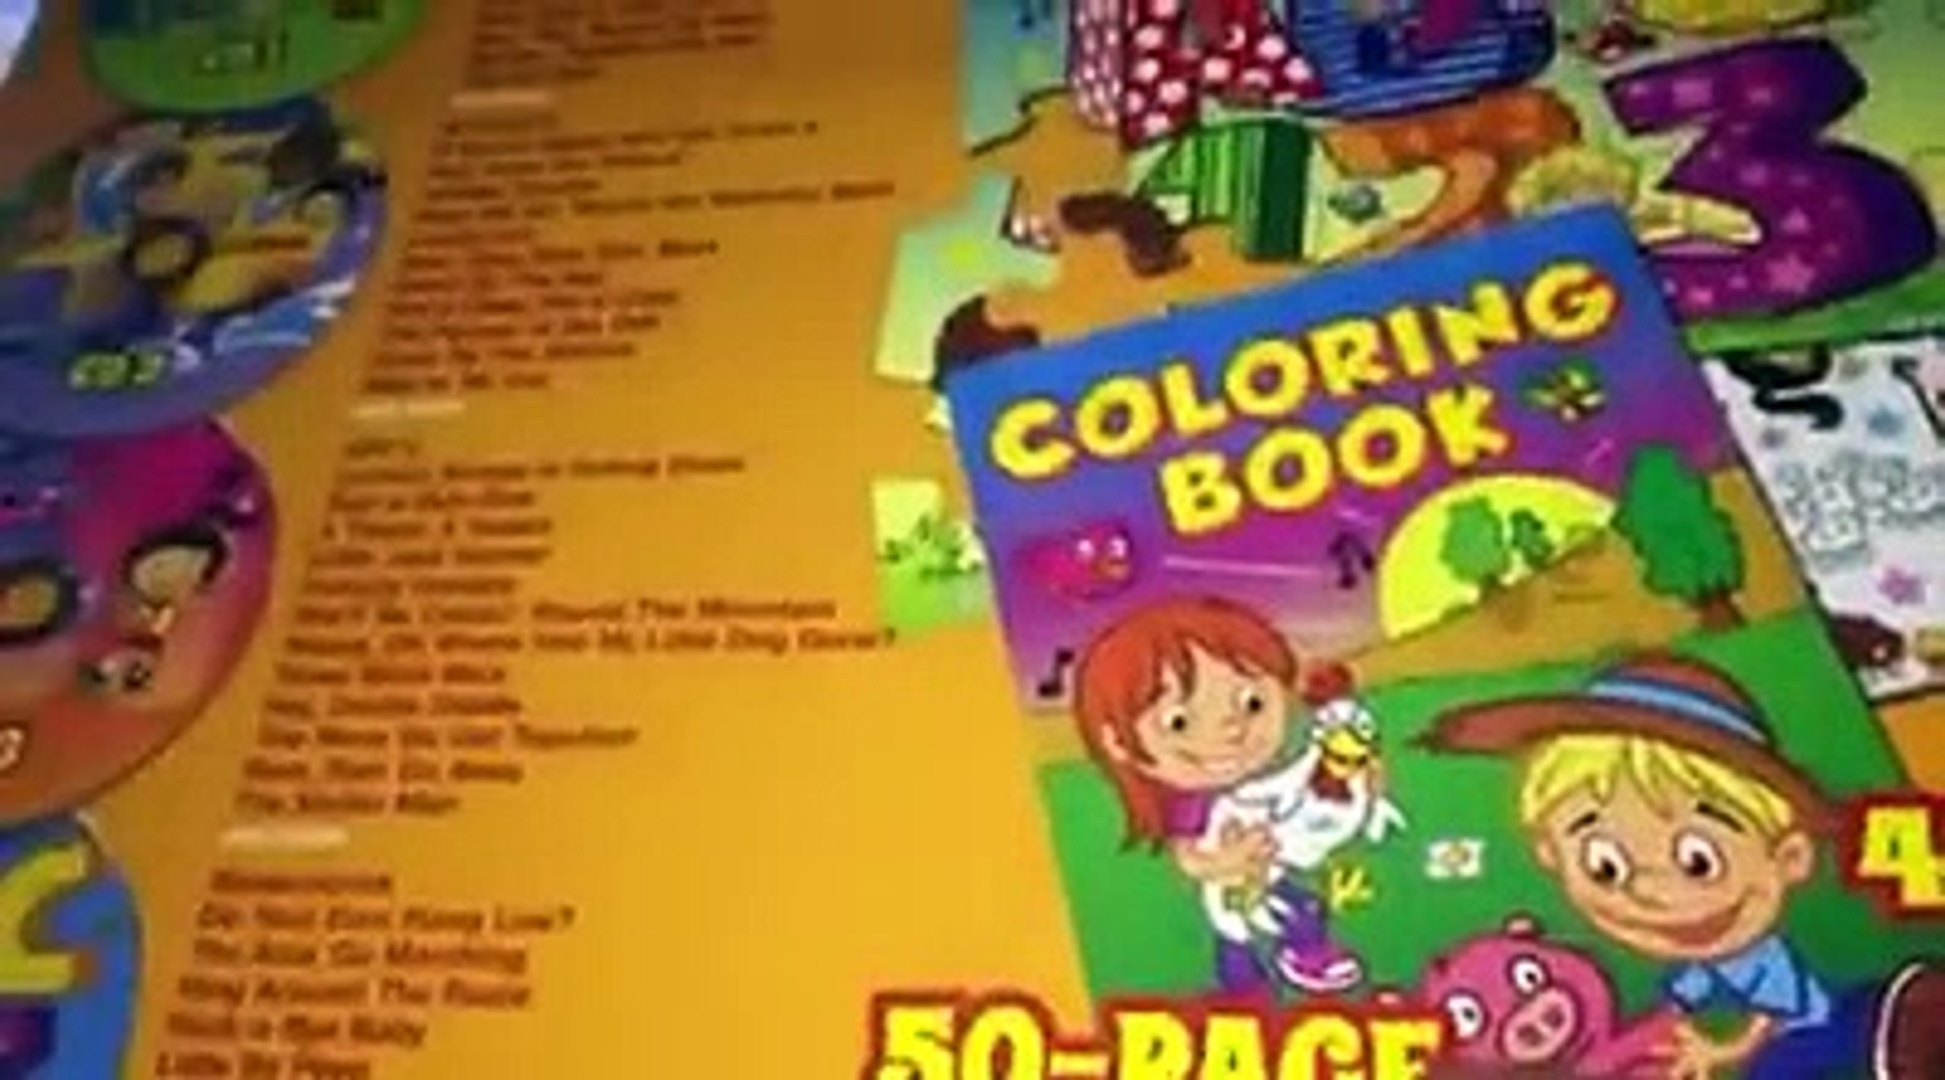 109 Songs For Kids Activity Kit Review